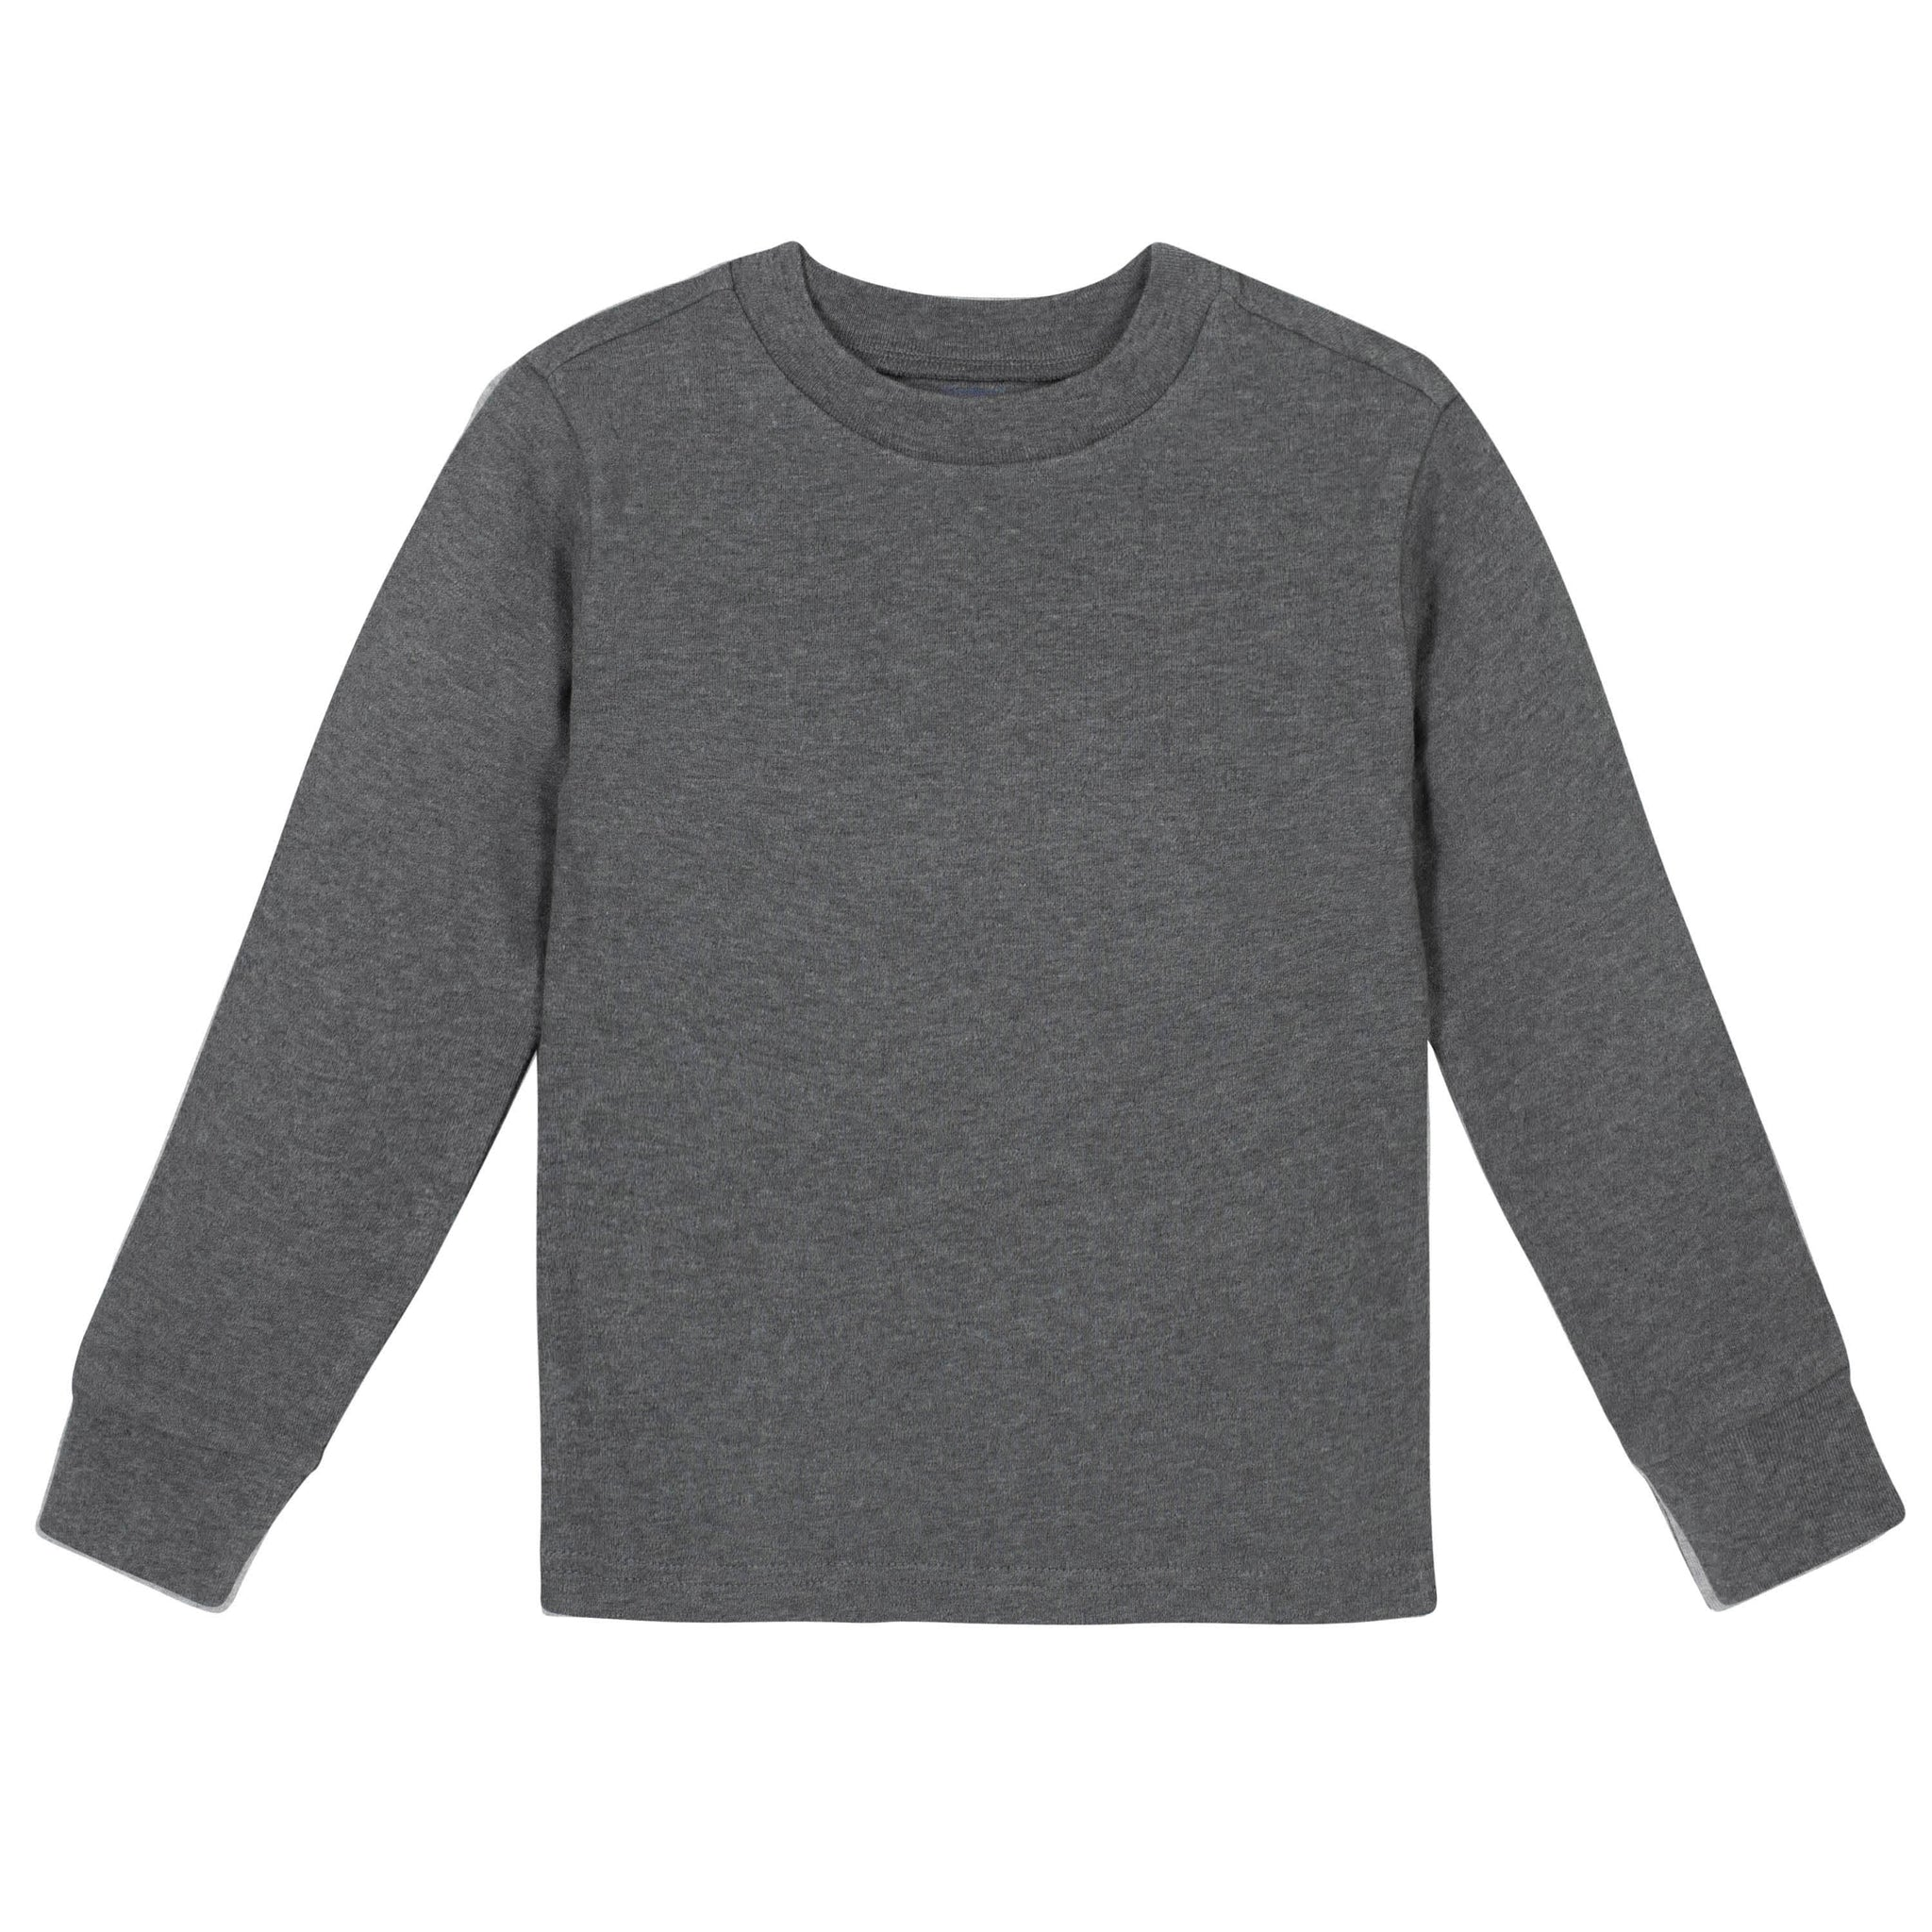 Gerber® Premium Gray Long Sleeve Tee Shirt - 10 Colors Available